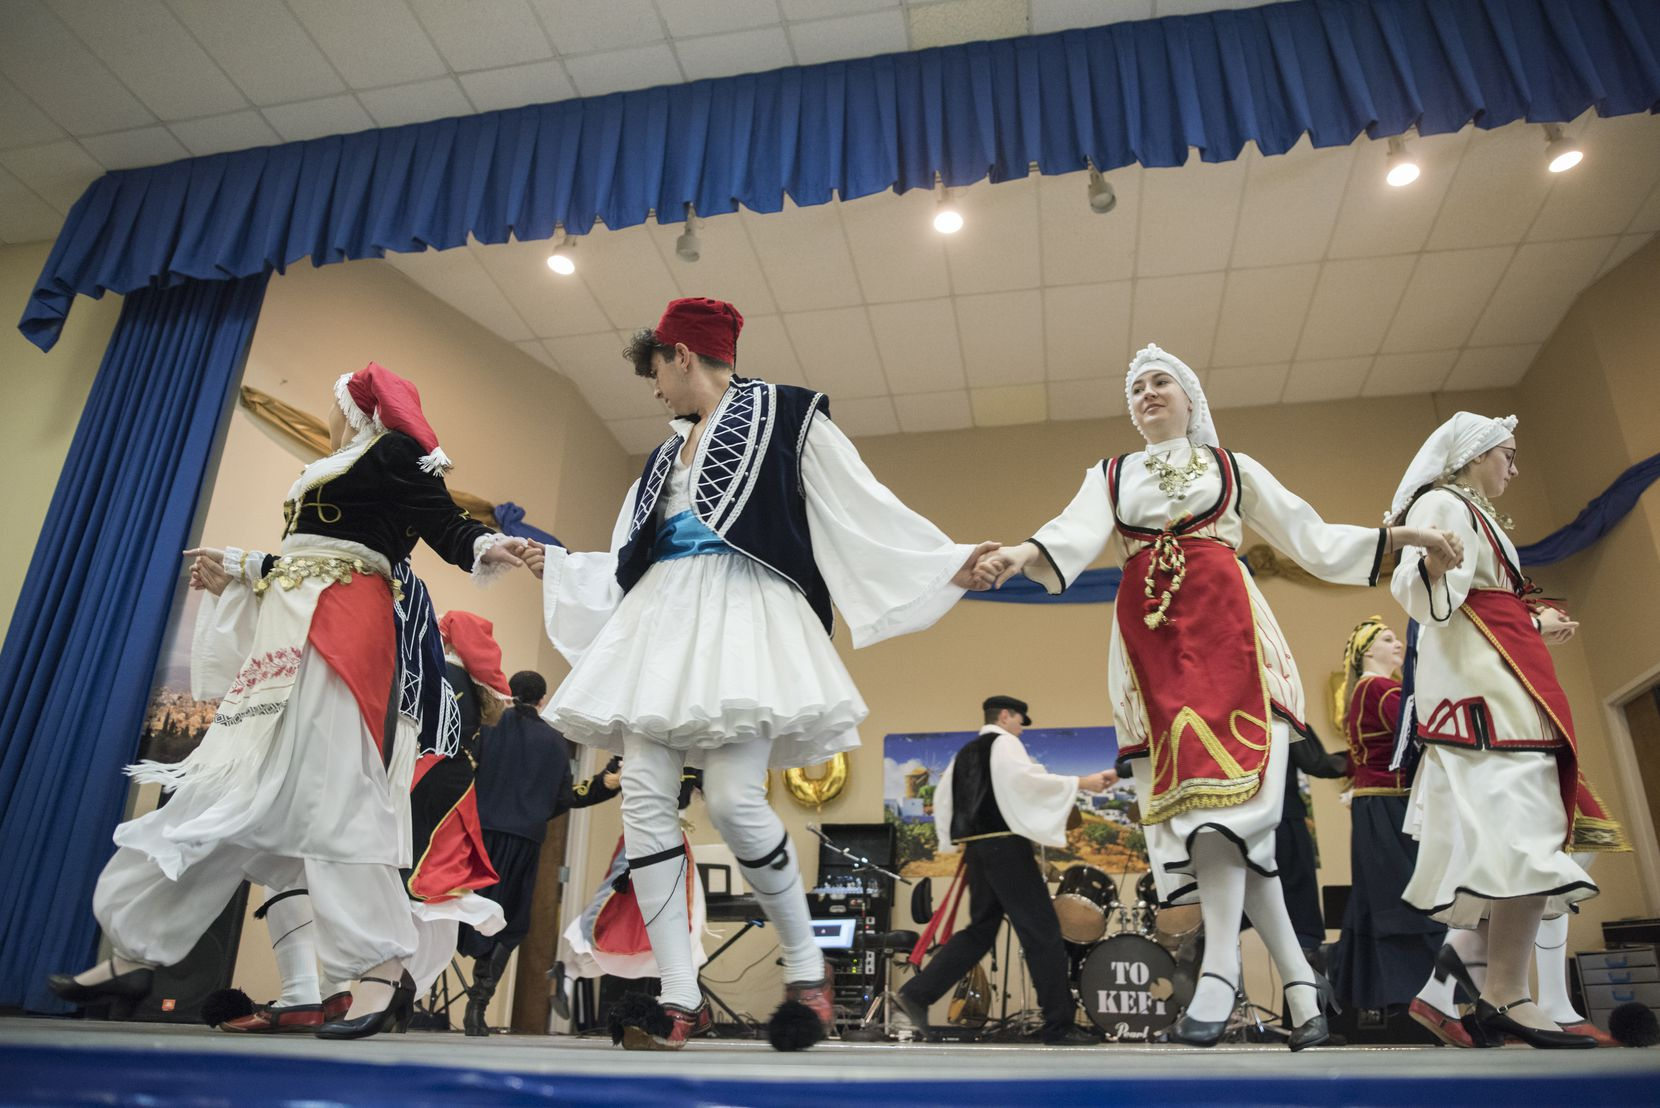 The Fort Worth Greek Festival will feature folk dancing, music and a variety of Greek treats to eat on-site or take home.